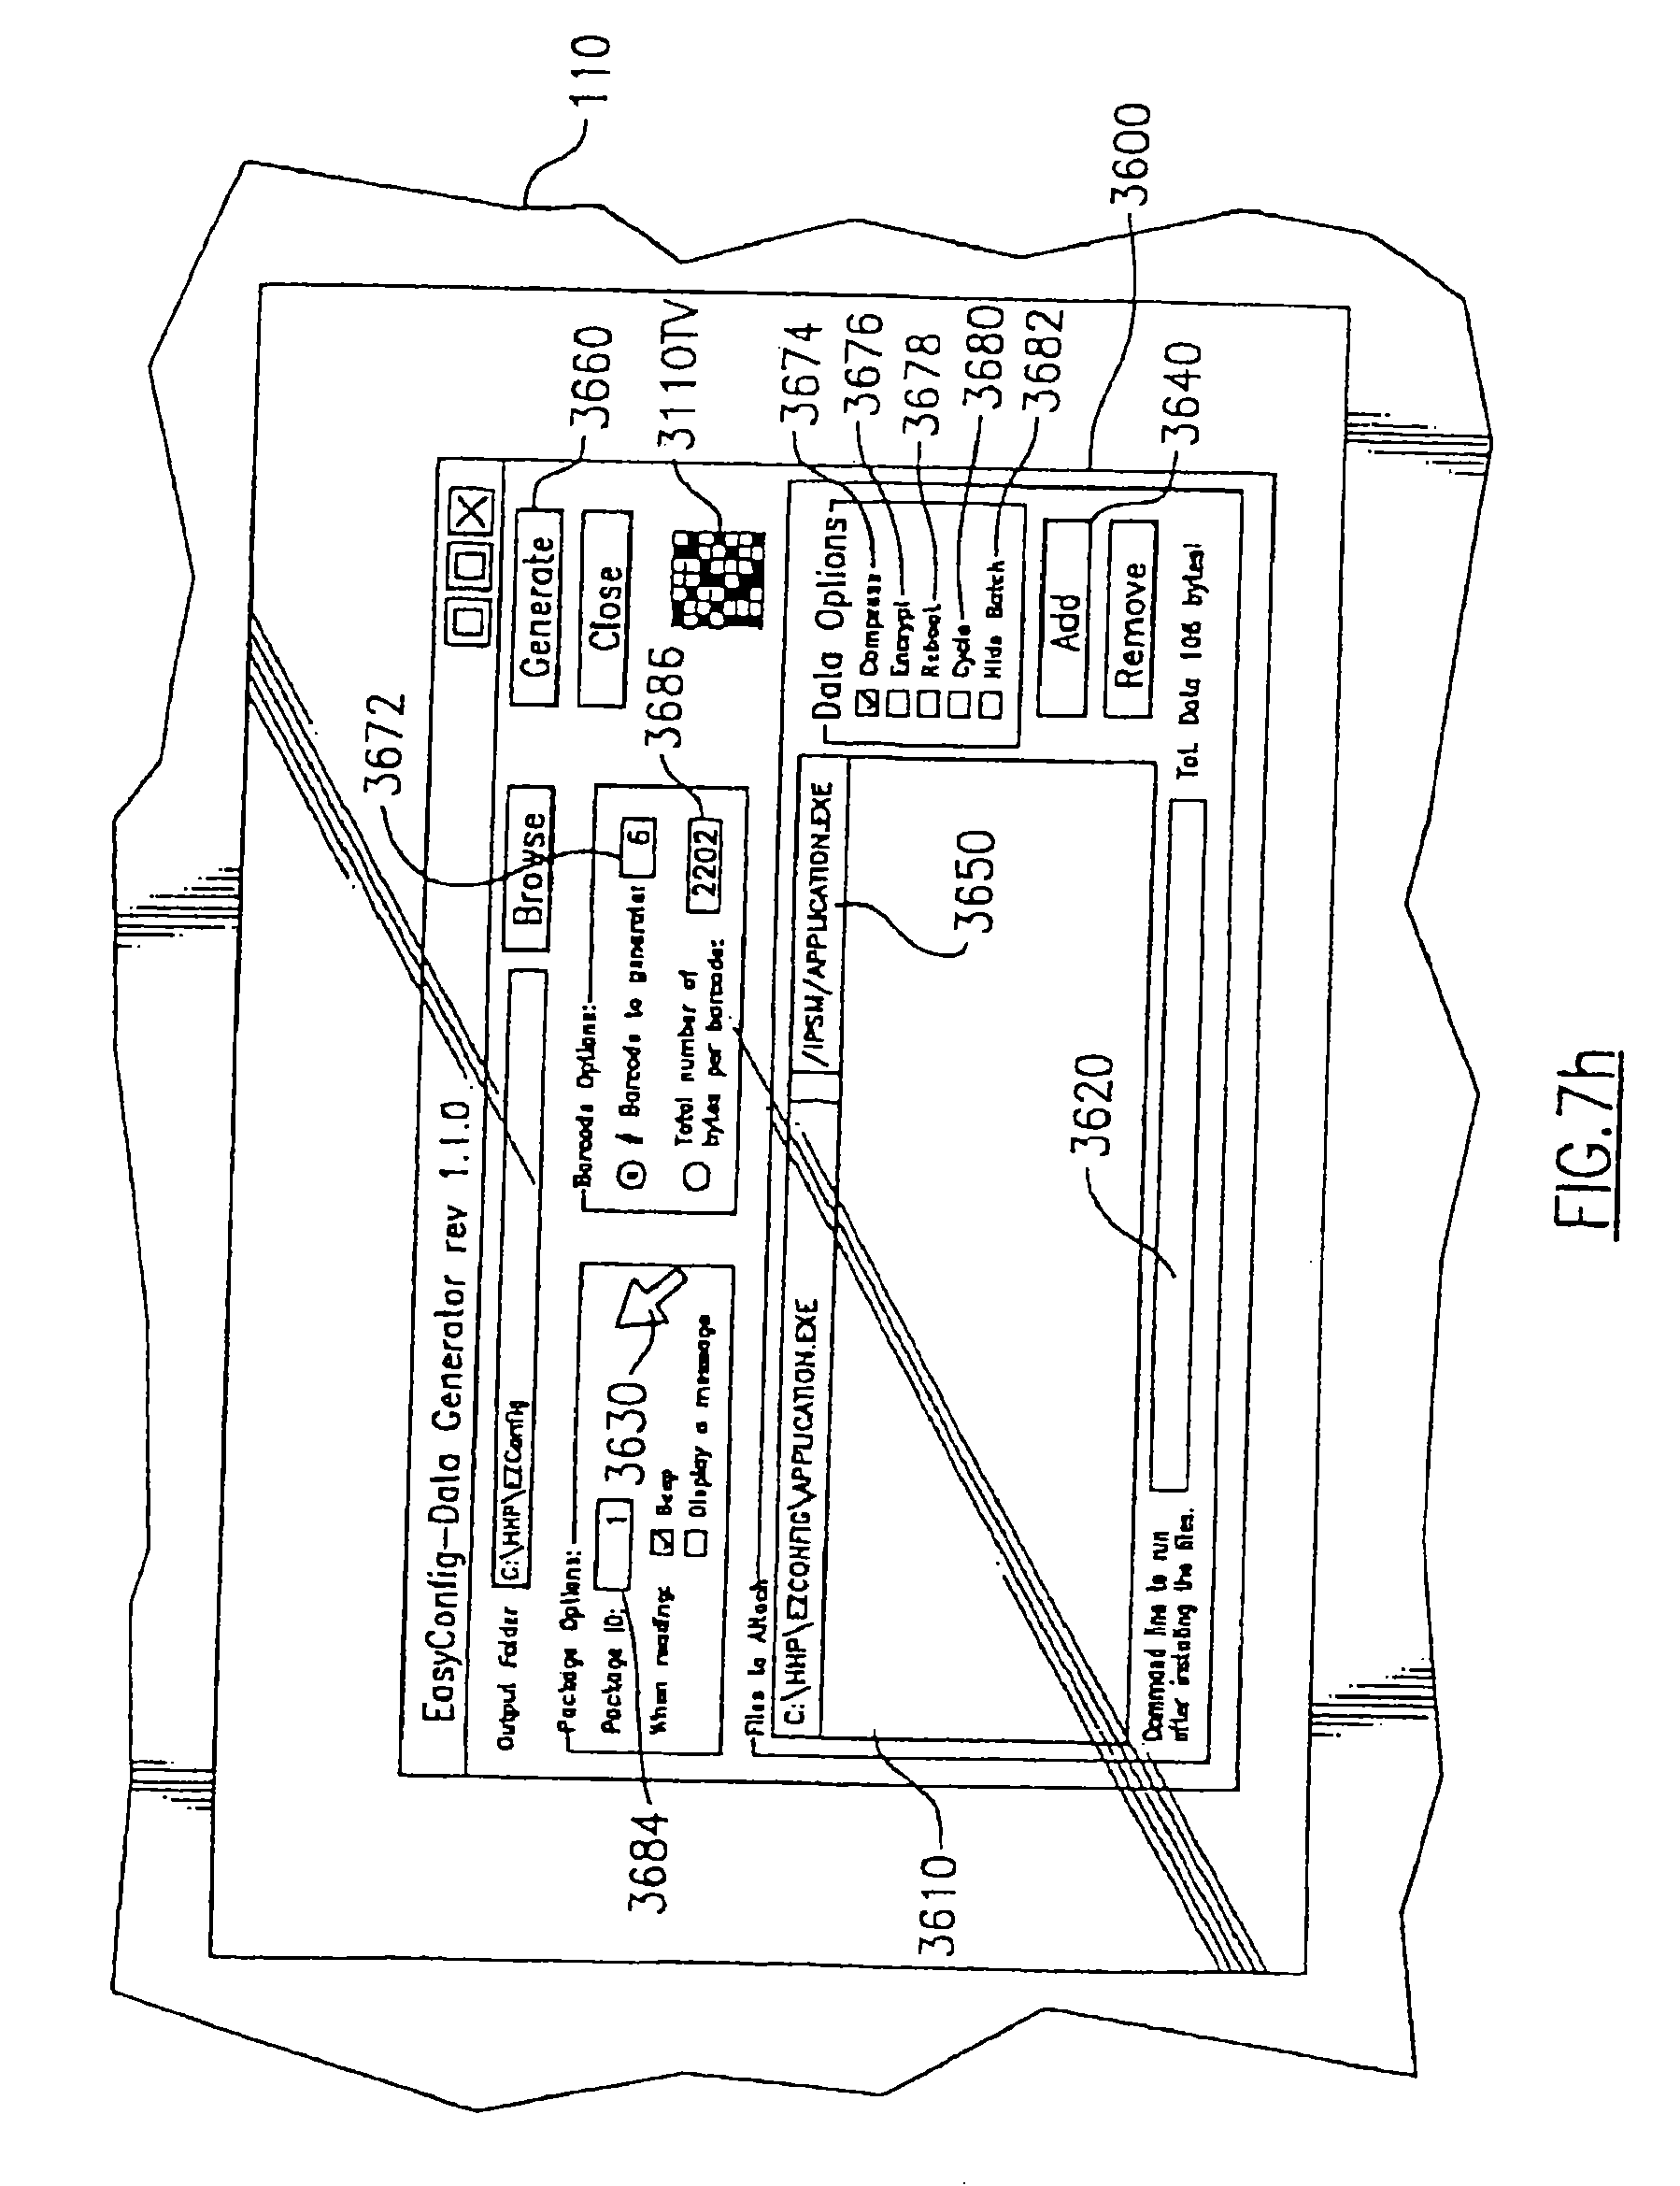 Patent Us 8985457 B2 Aaa C Wire Color Diagram Typical Single Line Unit 0 Petitions